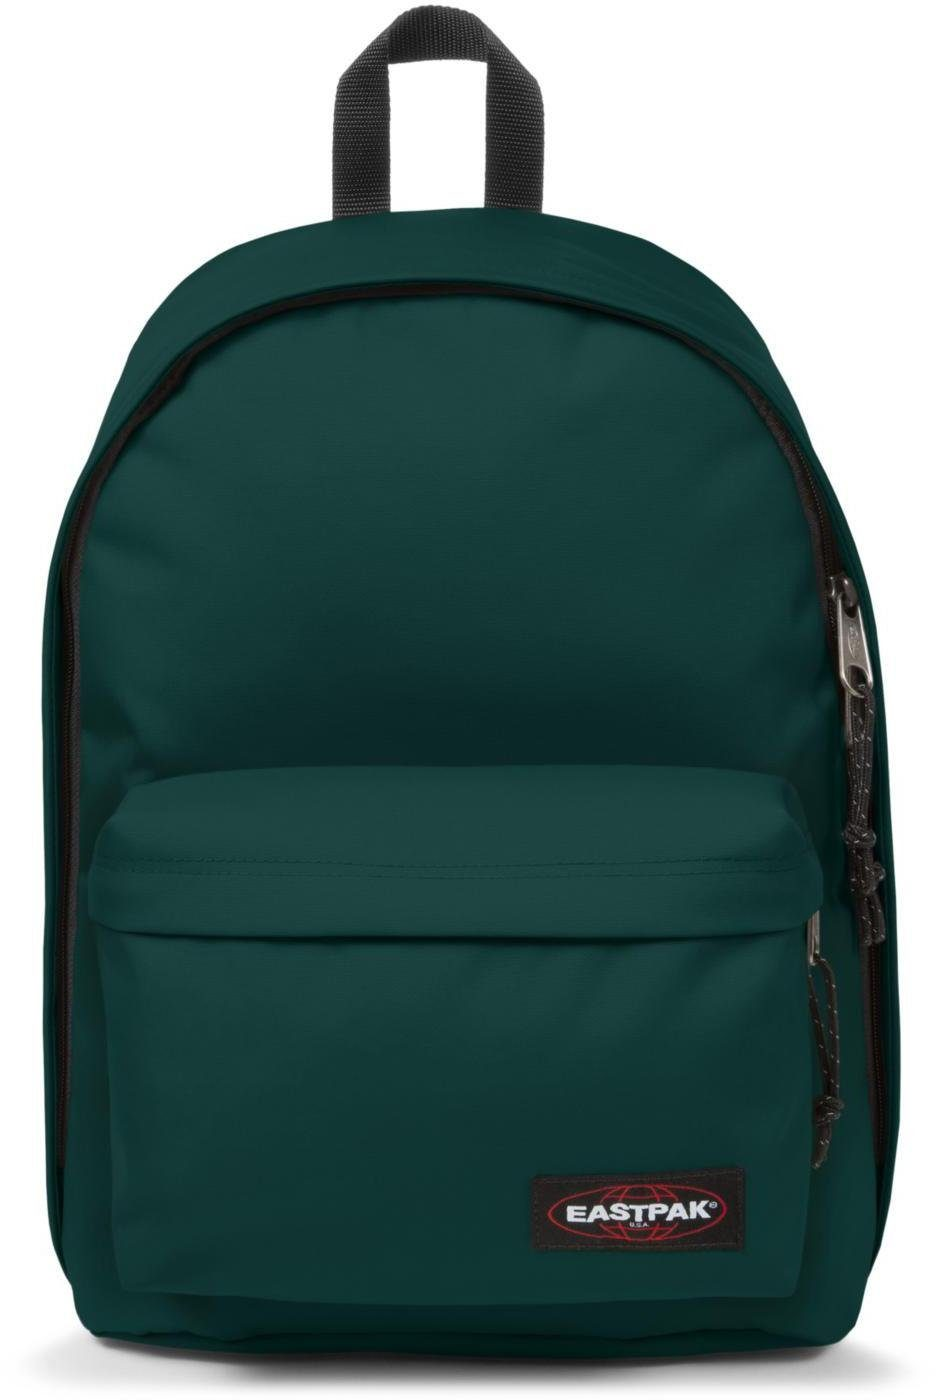 Eastpak Rucksack mit Laptopfach, »OUT OF OFFICE gutsy green«